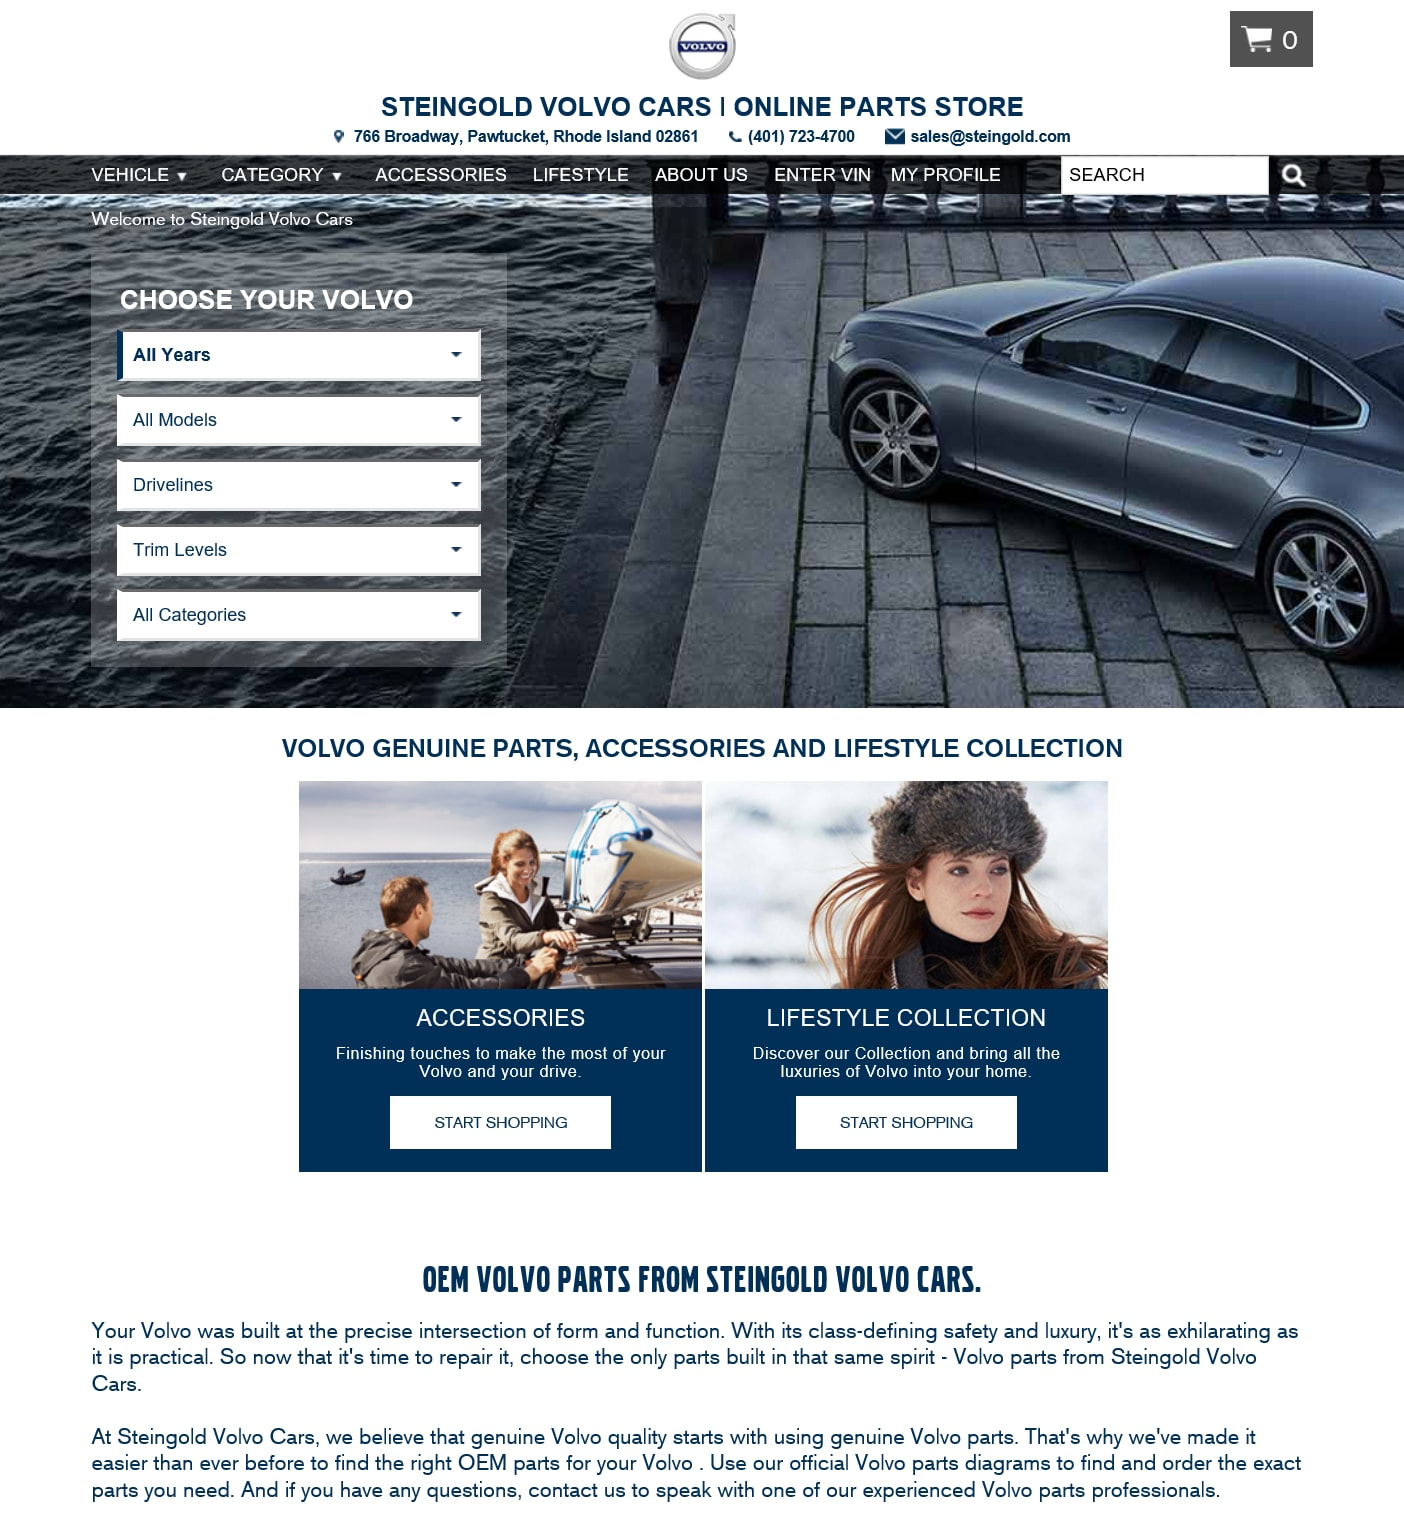 Purchase 100% Genuine Volvo Parts & Accessories Online | Steingold Volvo